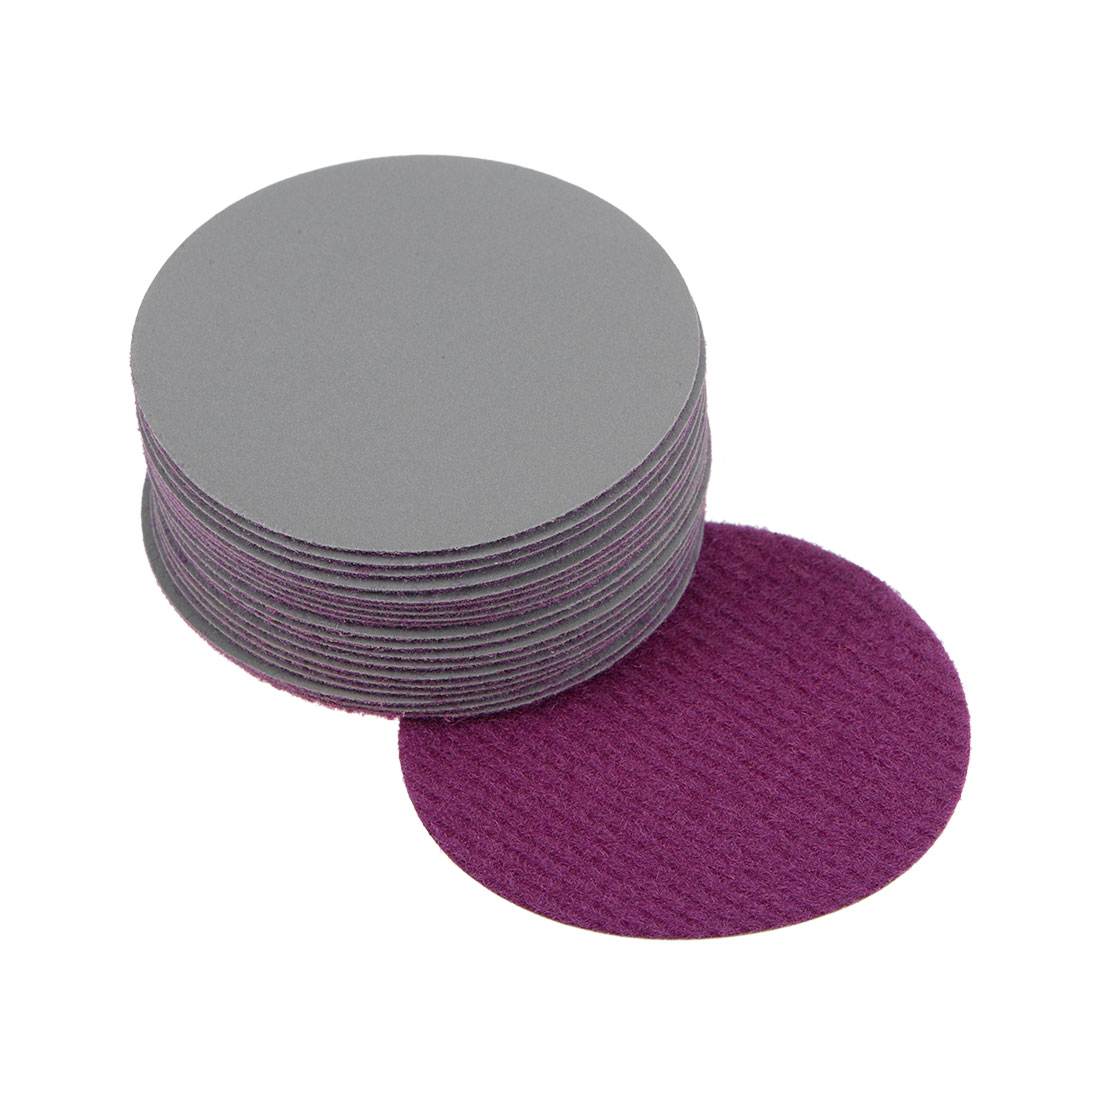 2 inch Wet Dry Discs 2000 Grit Hook and Loop Sanding Disc Silicon Carbide 20pcs